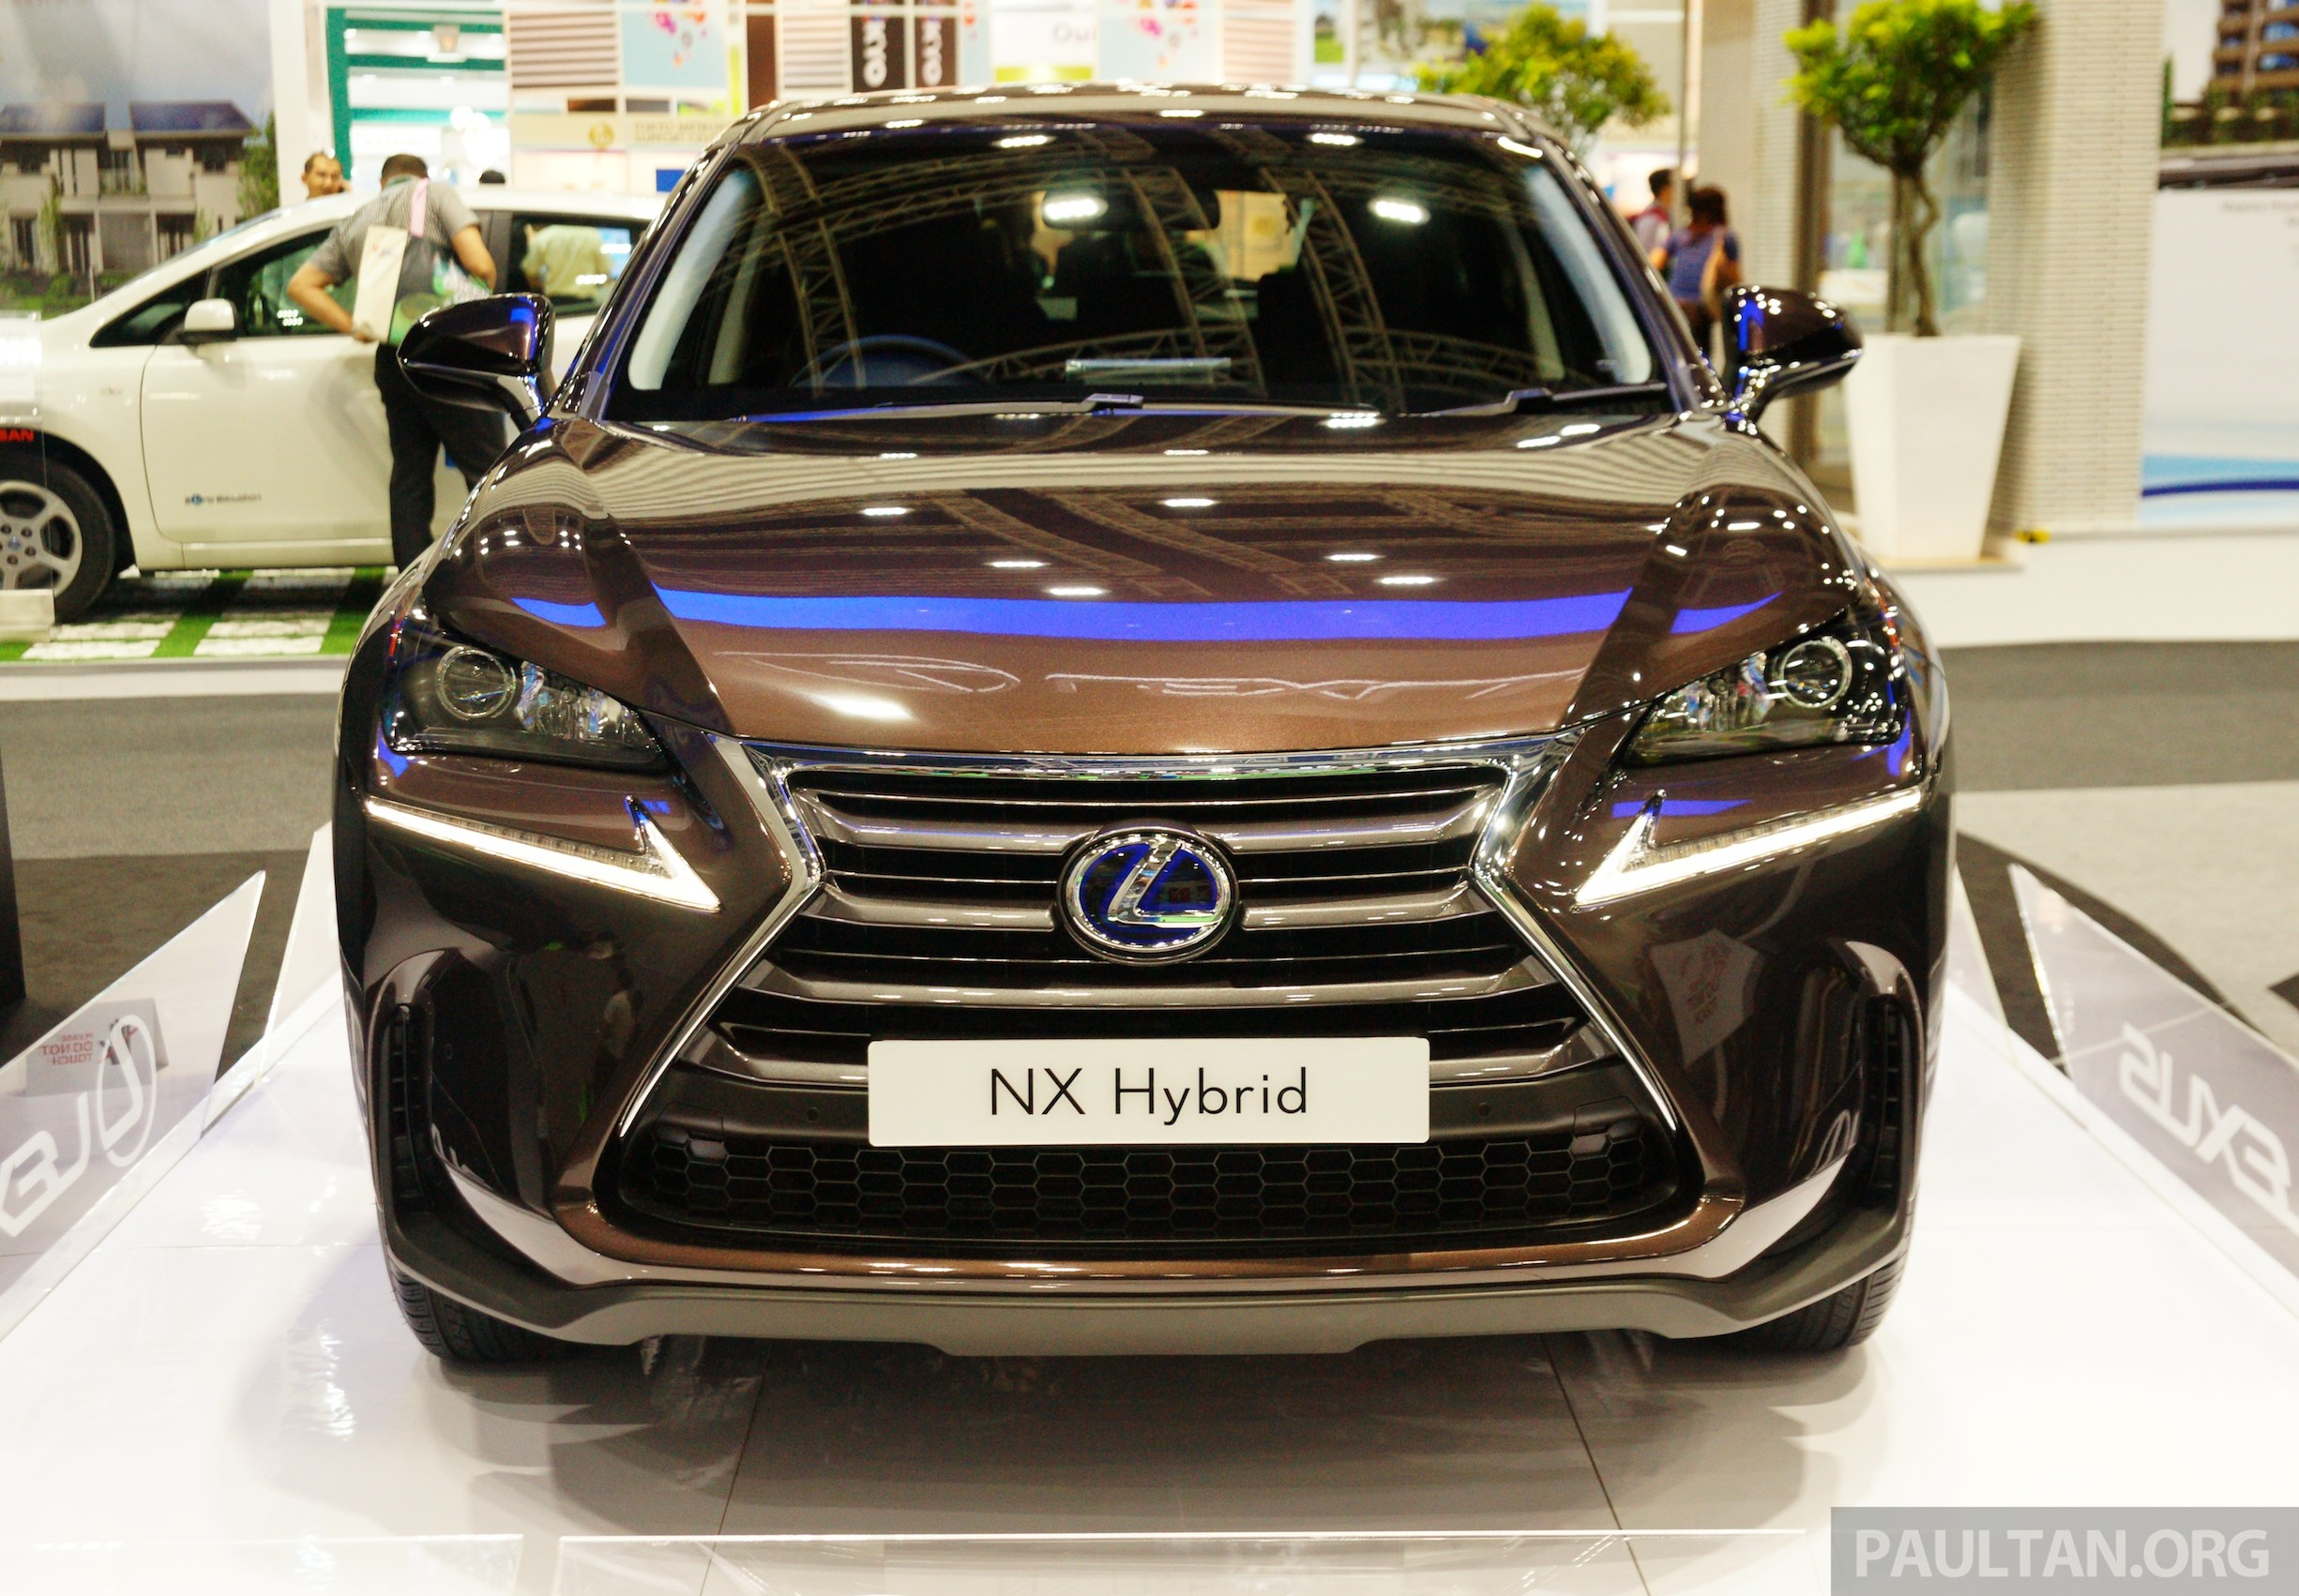 Lexus NX 300h on display at IGEM 2014 in KLCC Image 280992